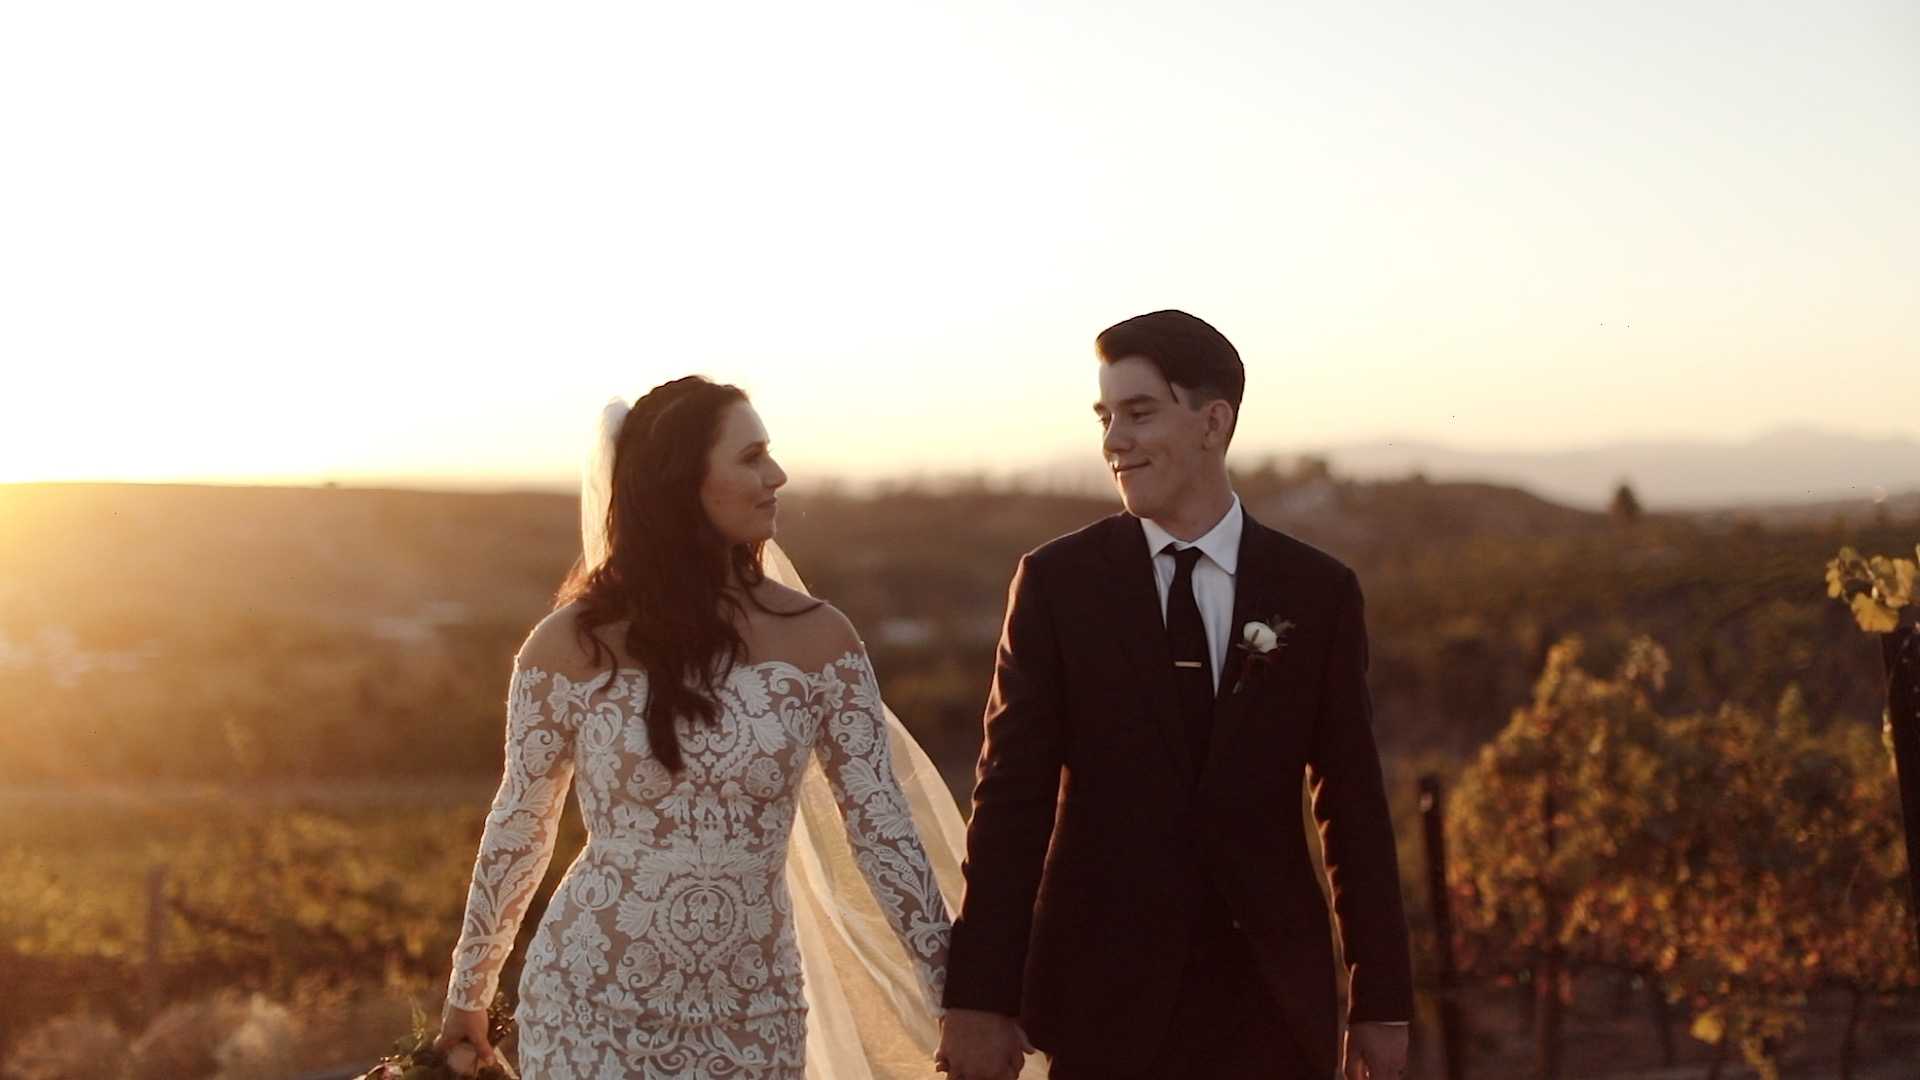 Hannah + Connor | Temecula, California | Falkner Winery